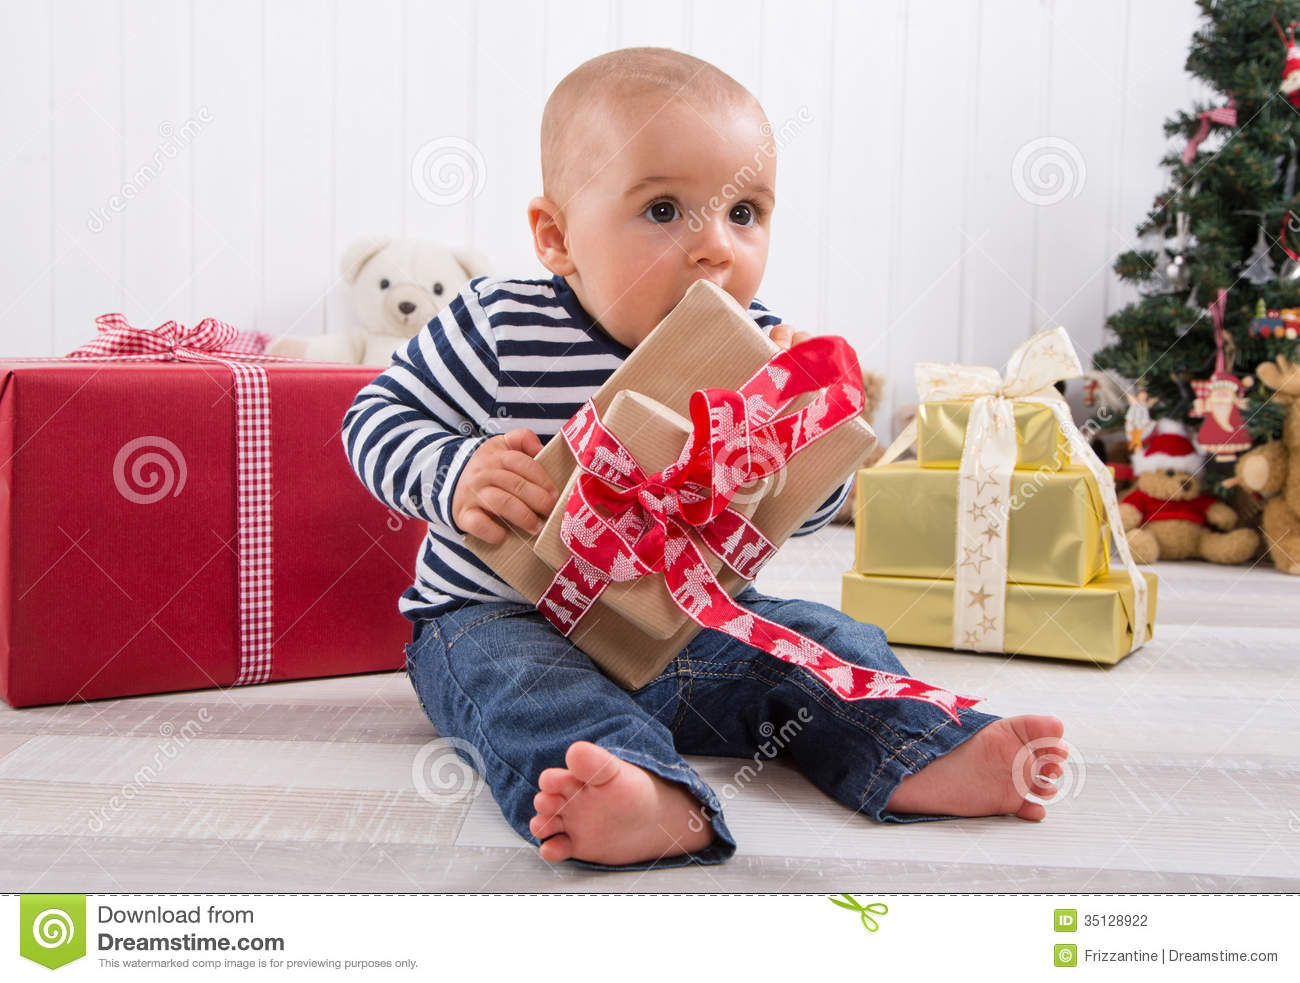 First Christmas: Baby Unwrapping A Present Stock Photo - Image of ...